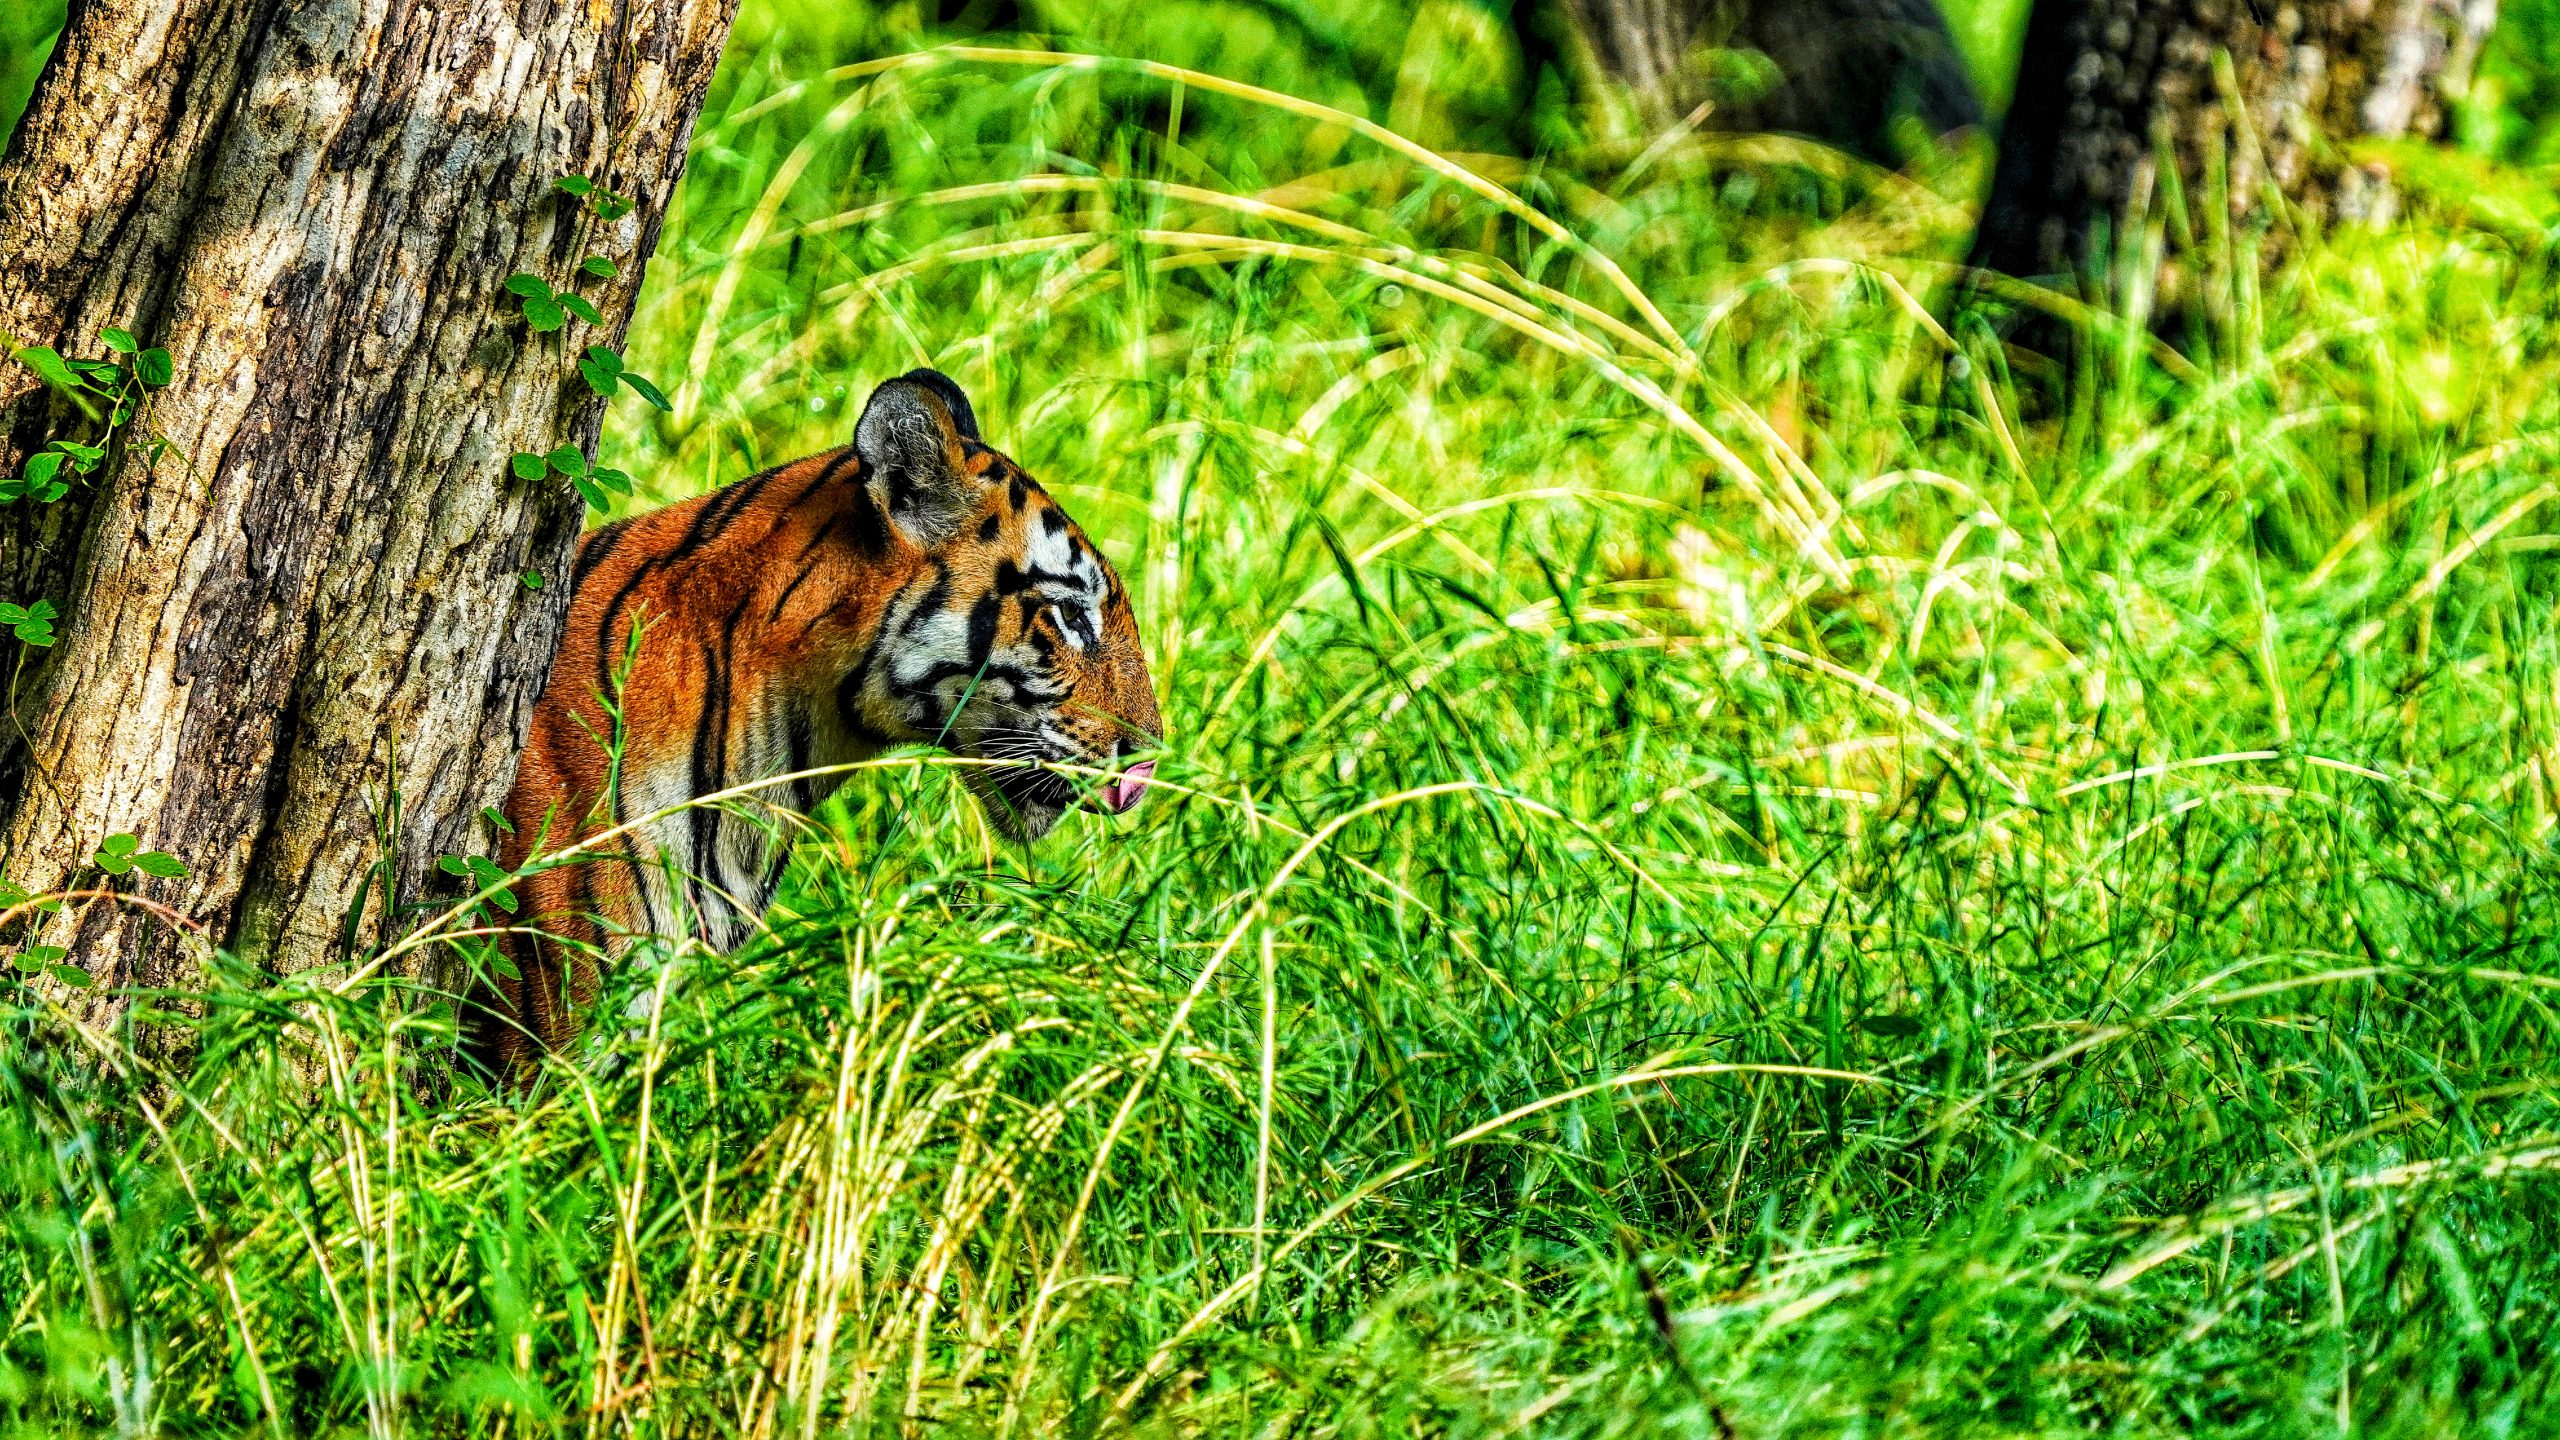 A tiger in wildlife santuary